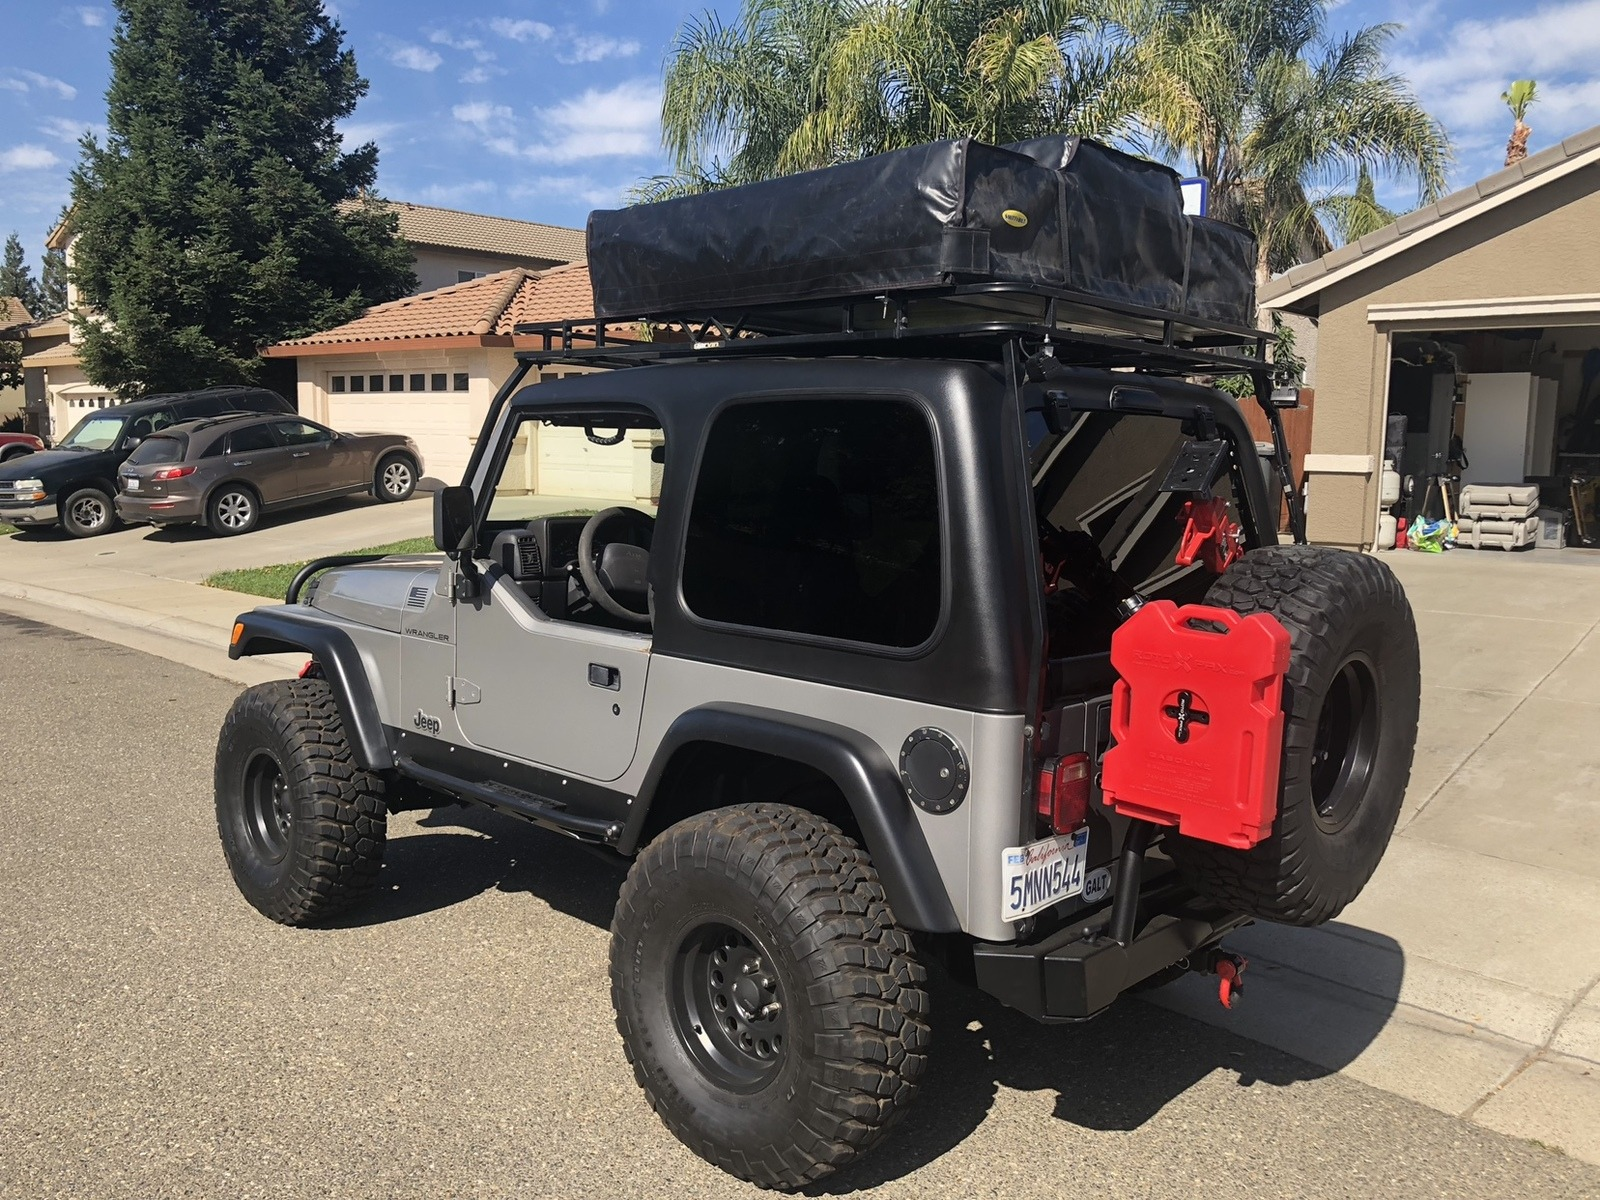 Project Shoestring A Overland Tj Build Jeep Wrangler Tj Forum